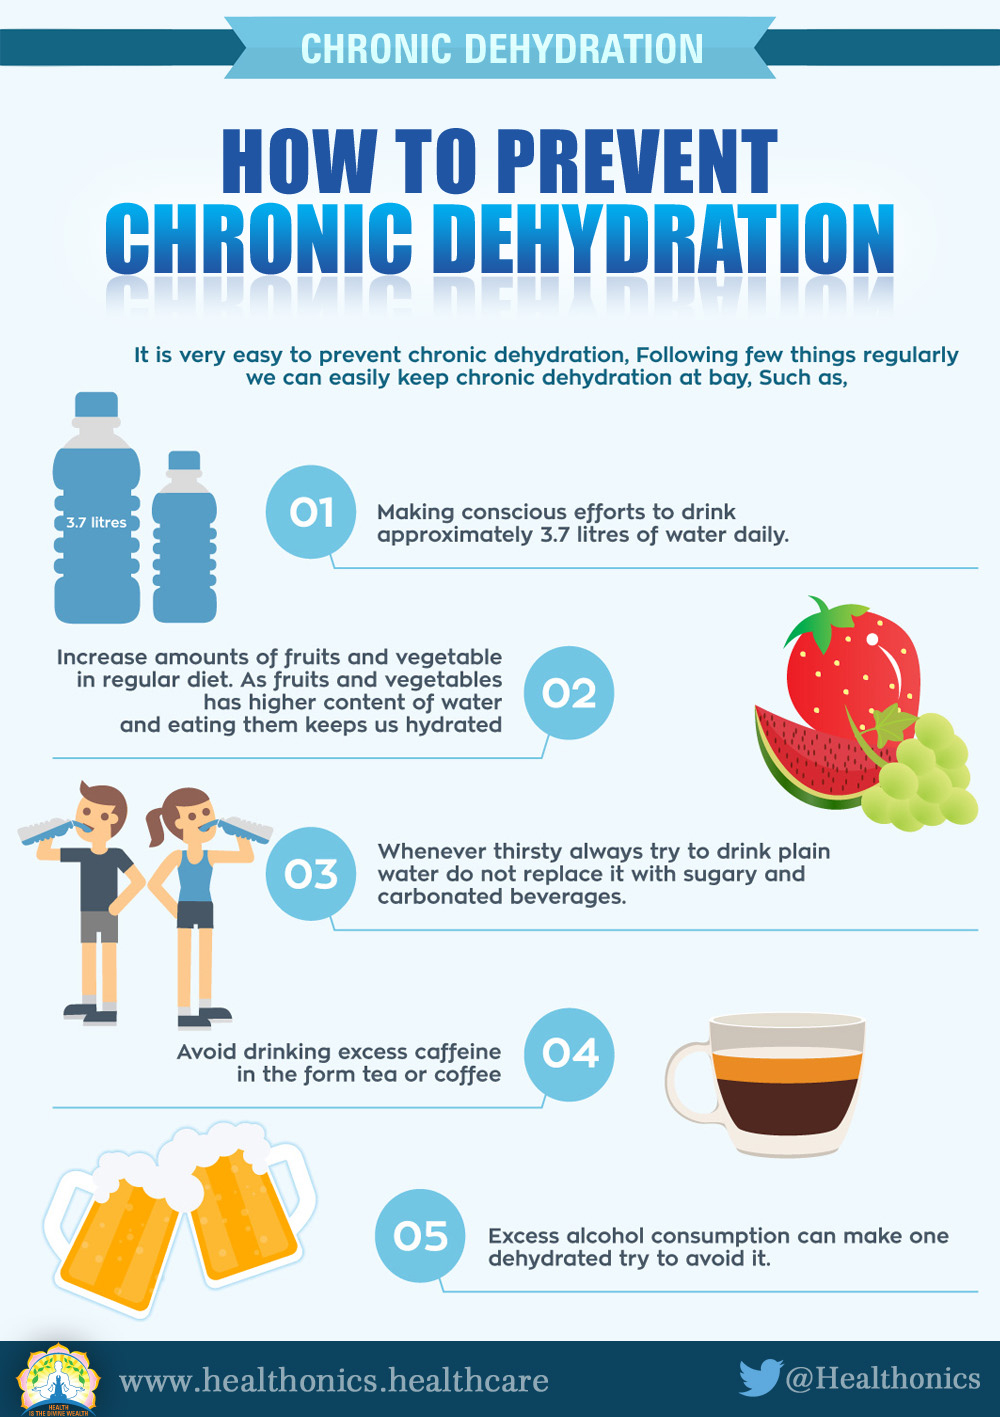 Drinking Sports Drinks Will Not Keep You Hydrated